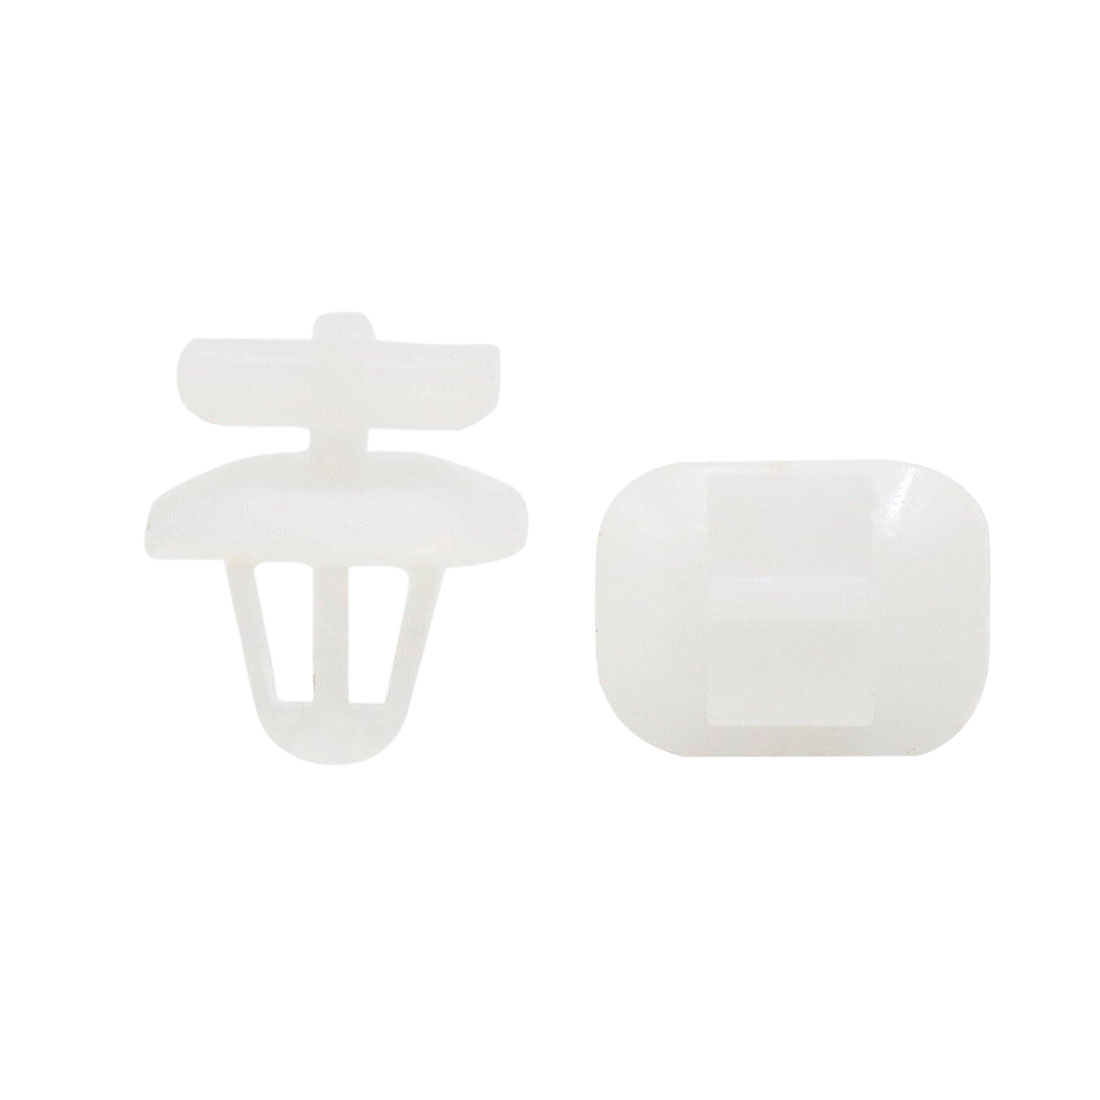 50pcs 8mm Hole White Plastic Rivets Trim Fastener Bumper Retainer Clips for Car